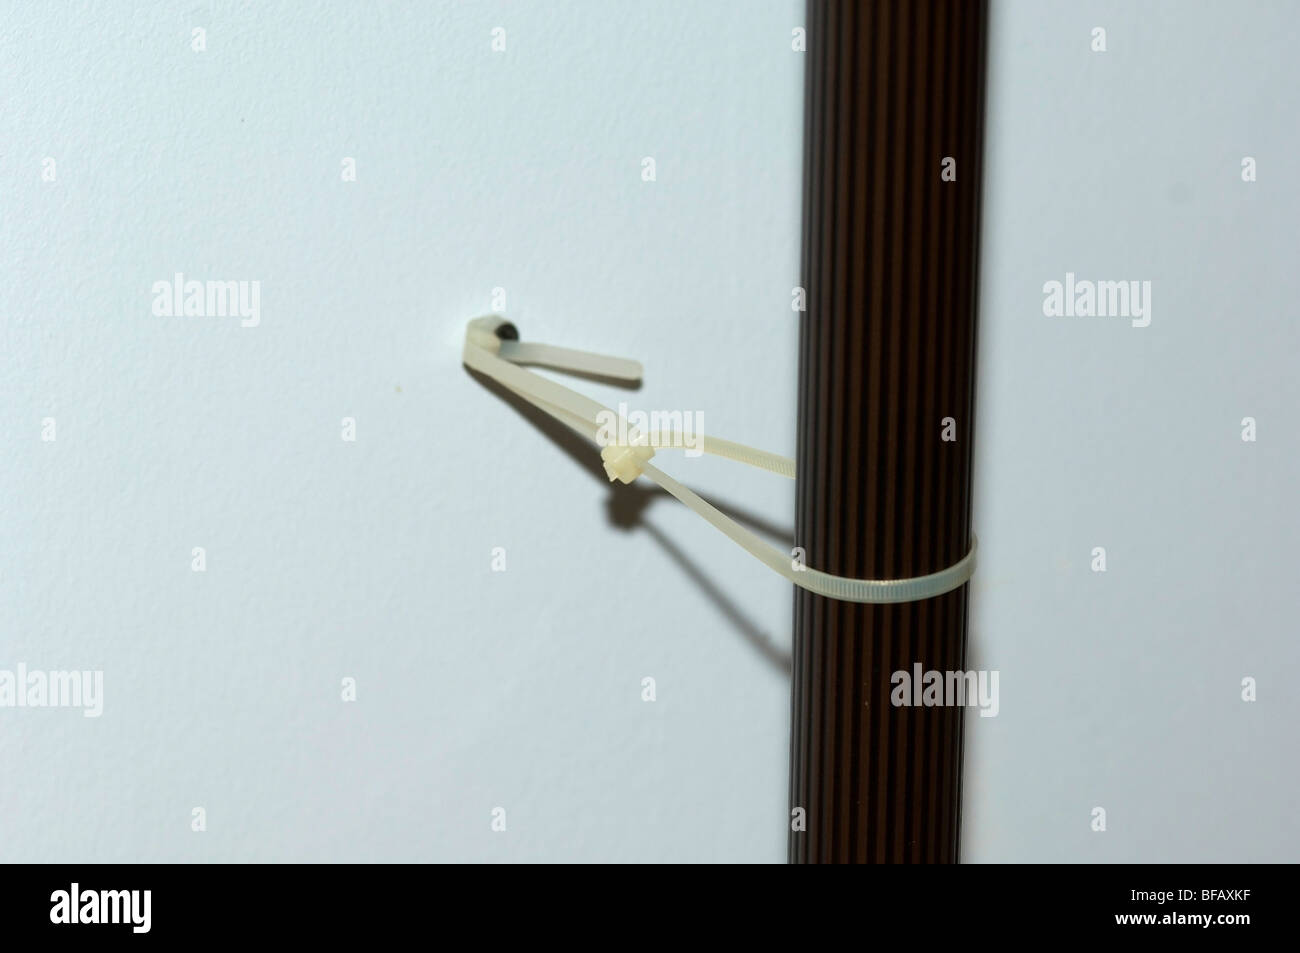 A lamp post secured to a wall using a screw and zip-ties for baby safety and home childproofing. - Stock Image